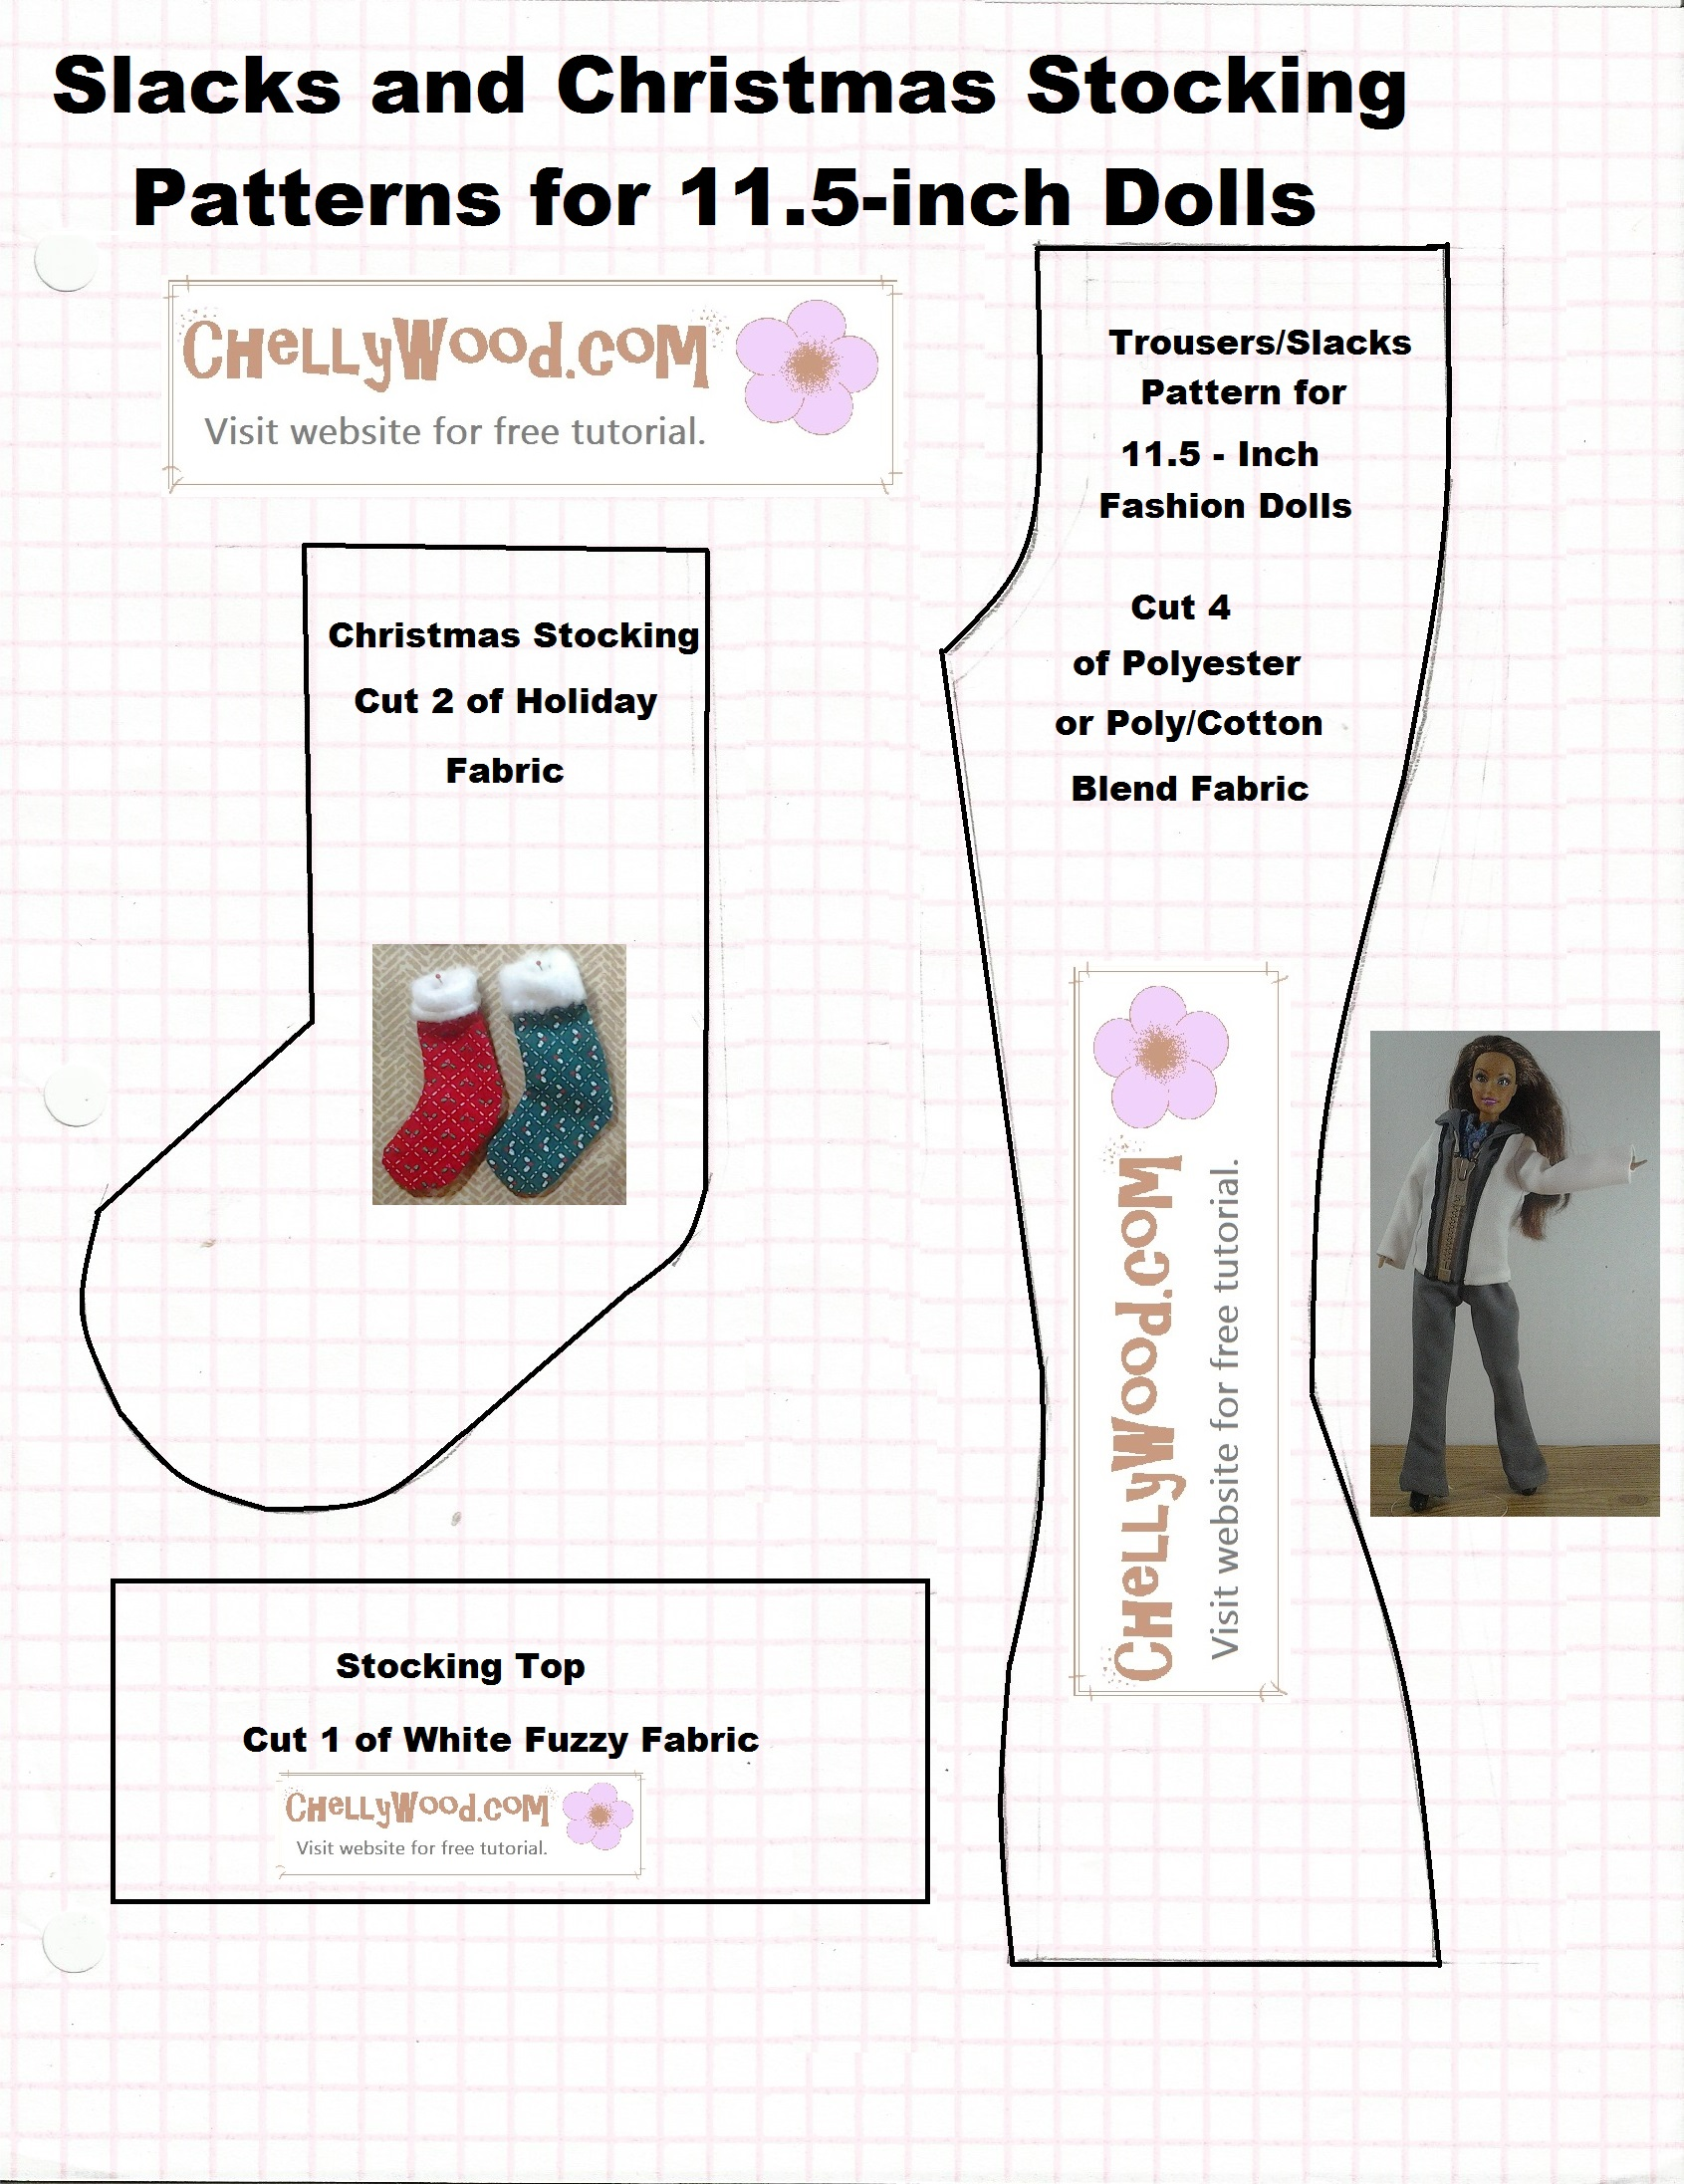 photograph about Printable Stocking Patterns titled Practice for developing a #miniature #vacation #stocking is no cost